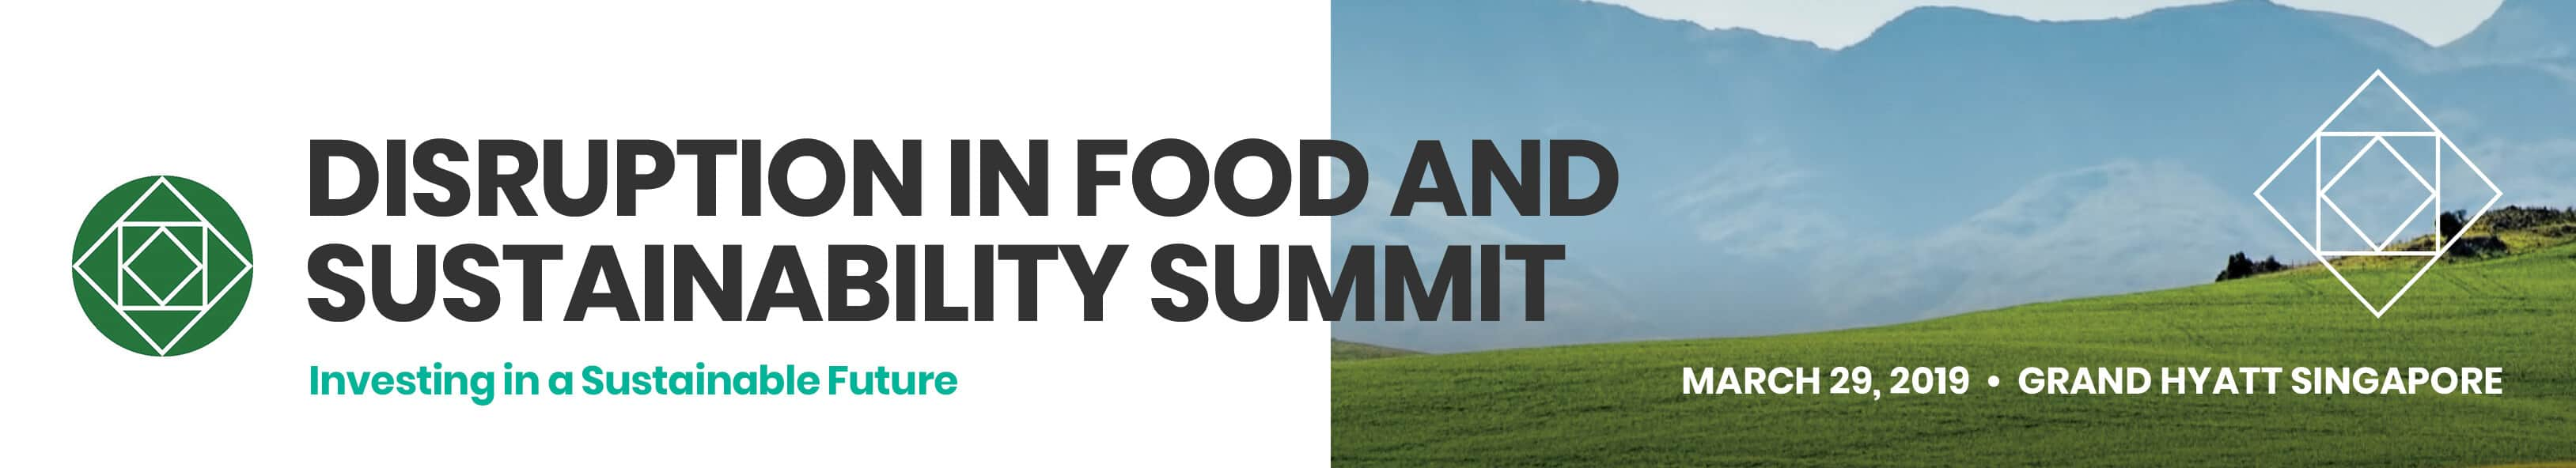 Disruption in Food and Sustainability Summit (DFSS)